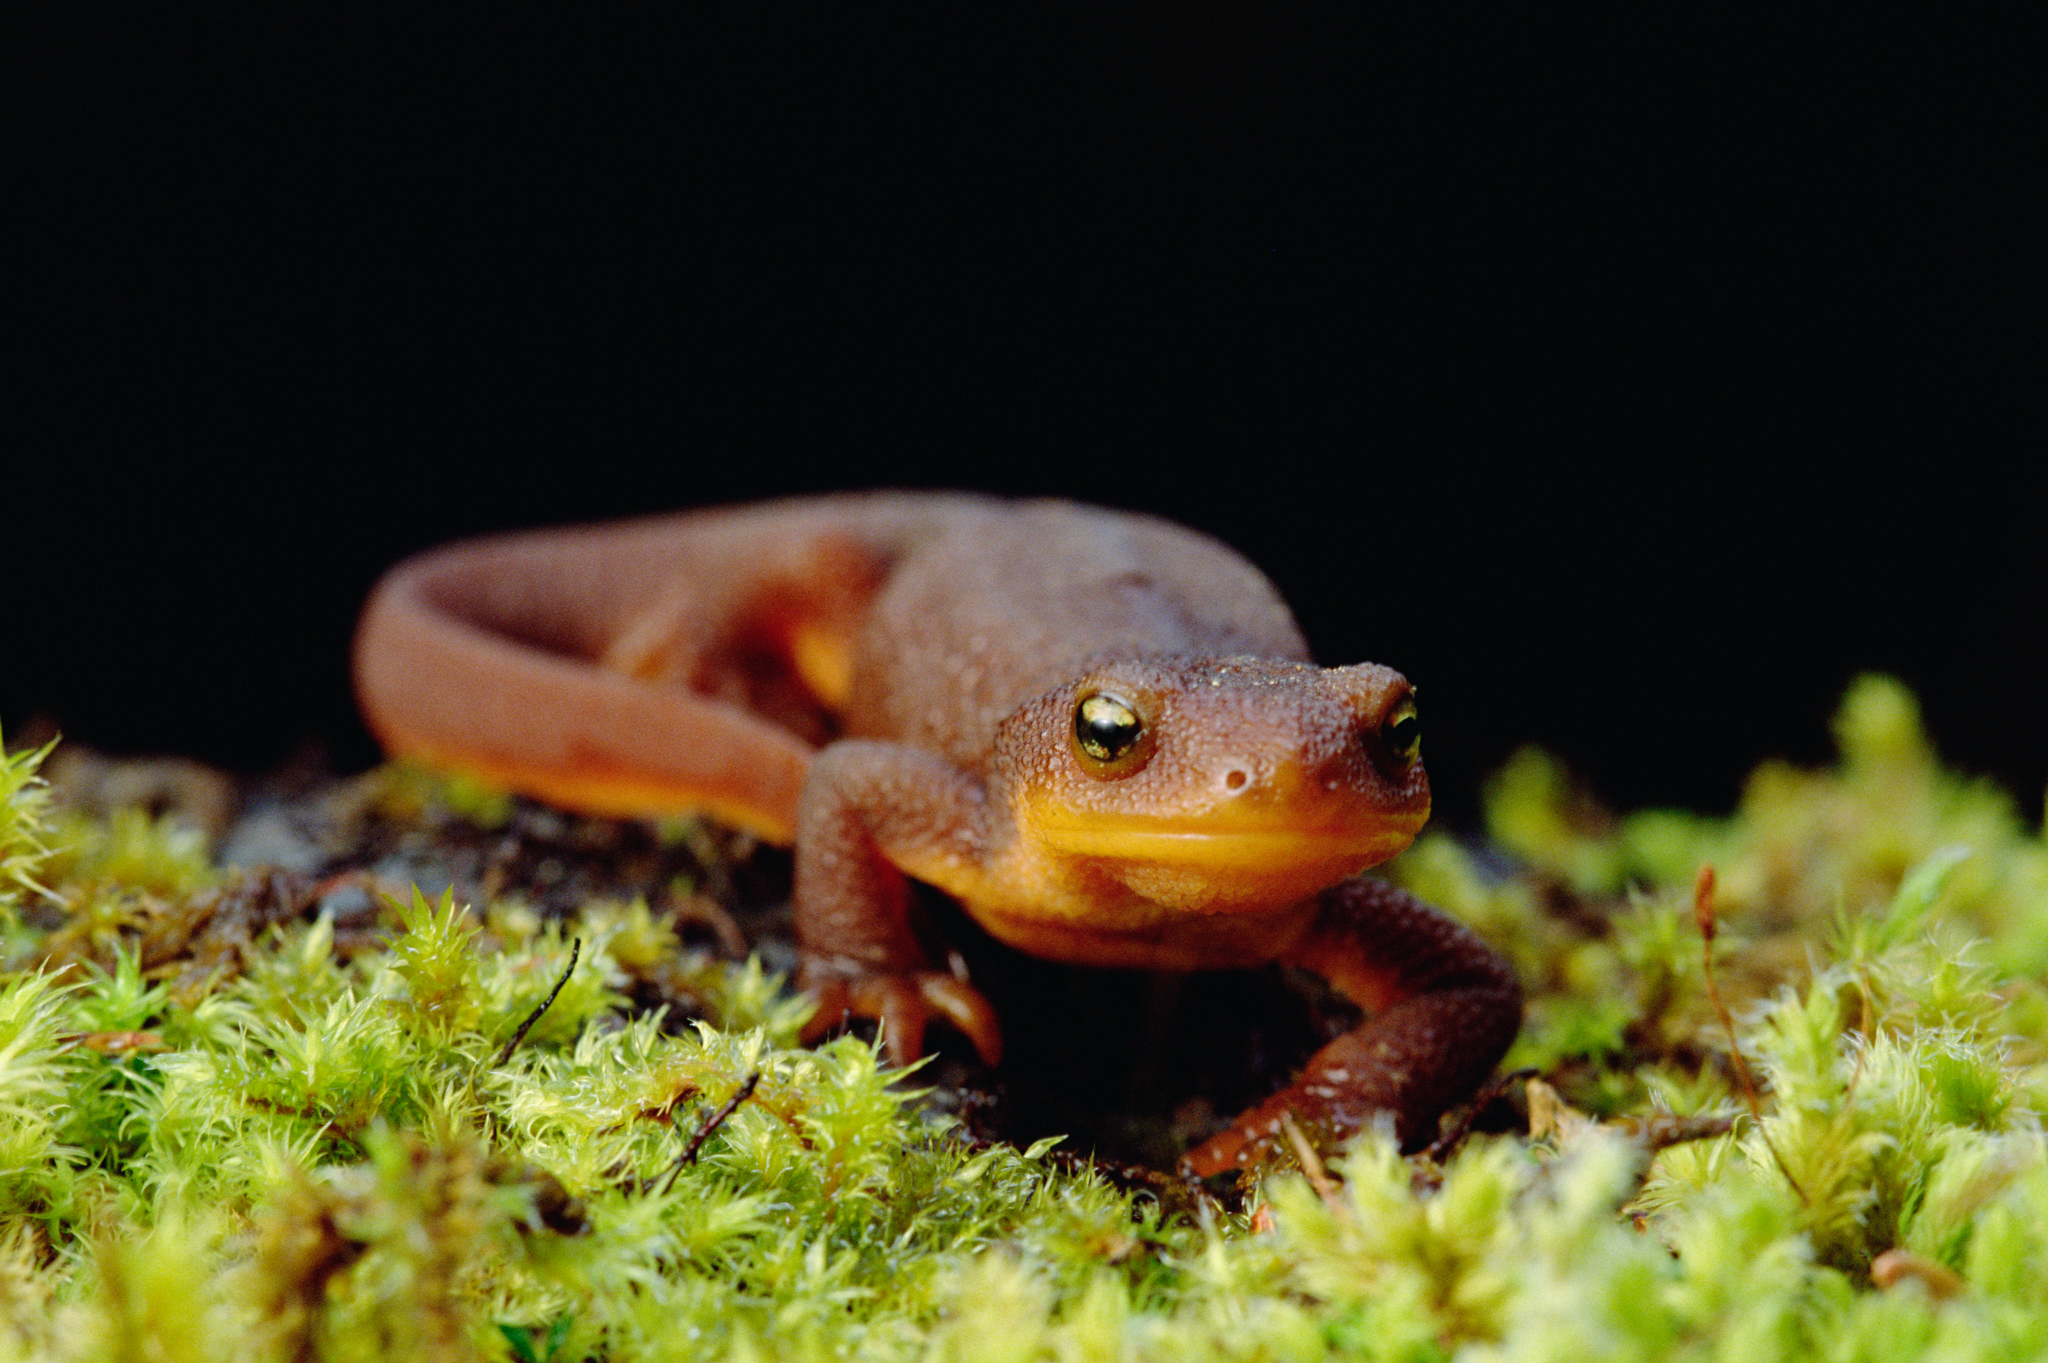 Rough-skinned Newt (Taricha granulosa) Siskiyou National Forest, Oregon. Photo by Gerry Ellis